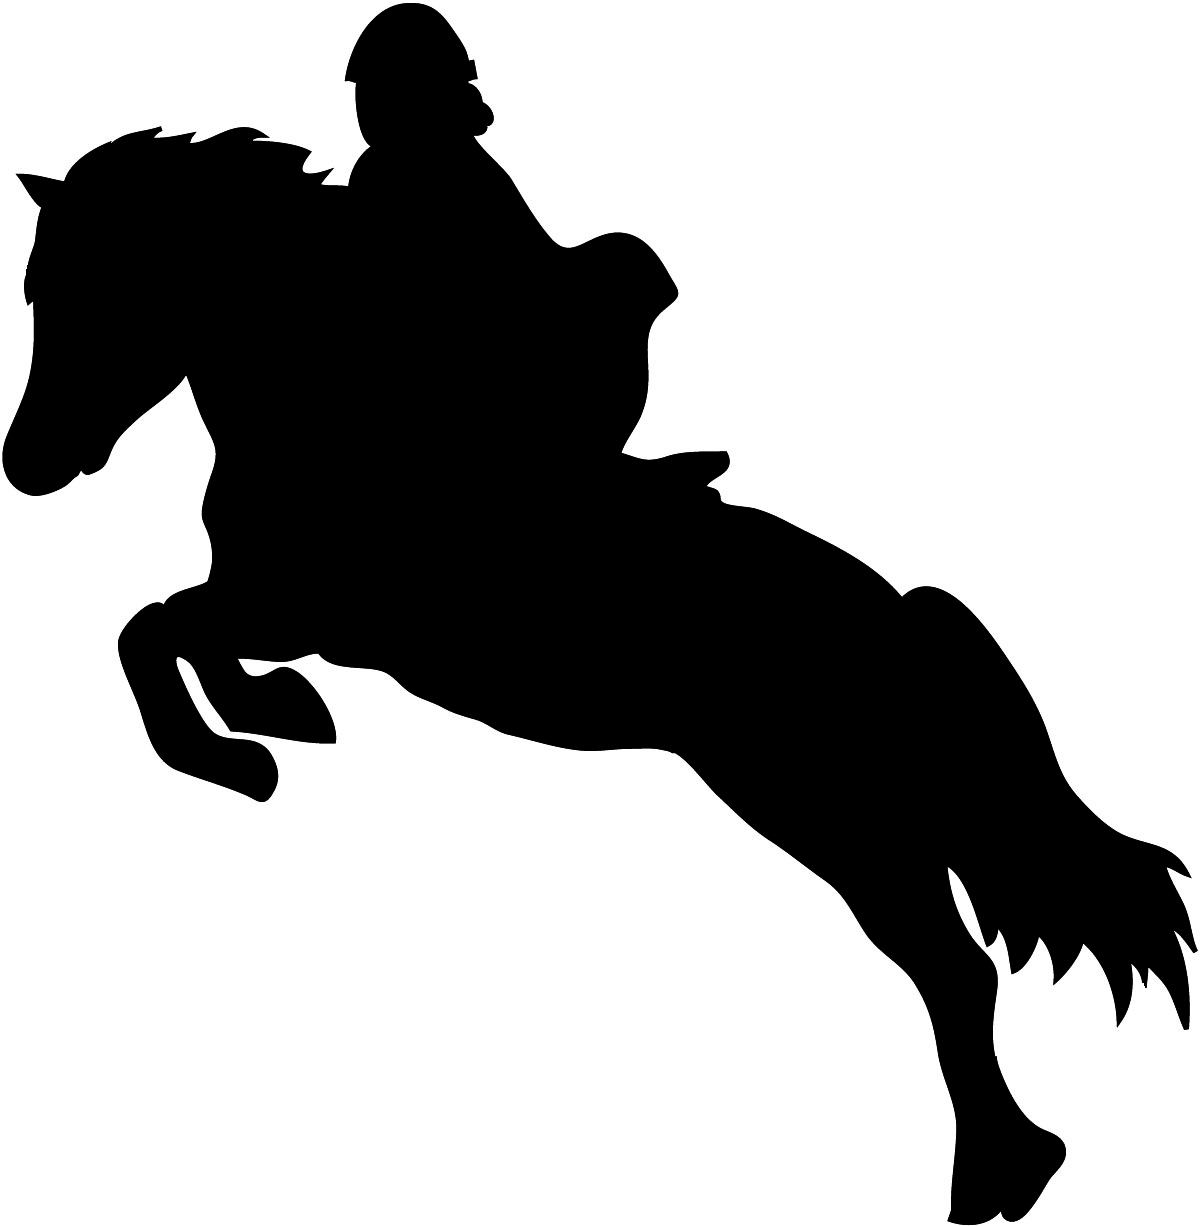 Show jumping horse silhouette with rider